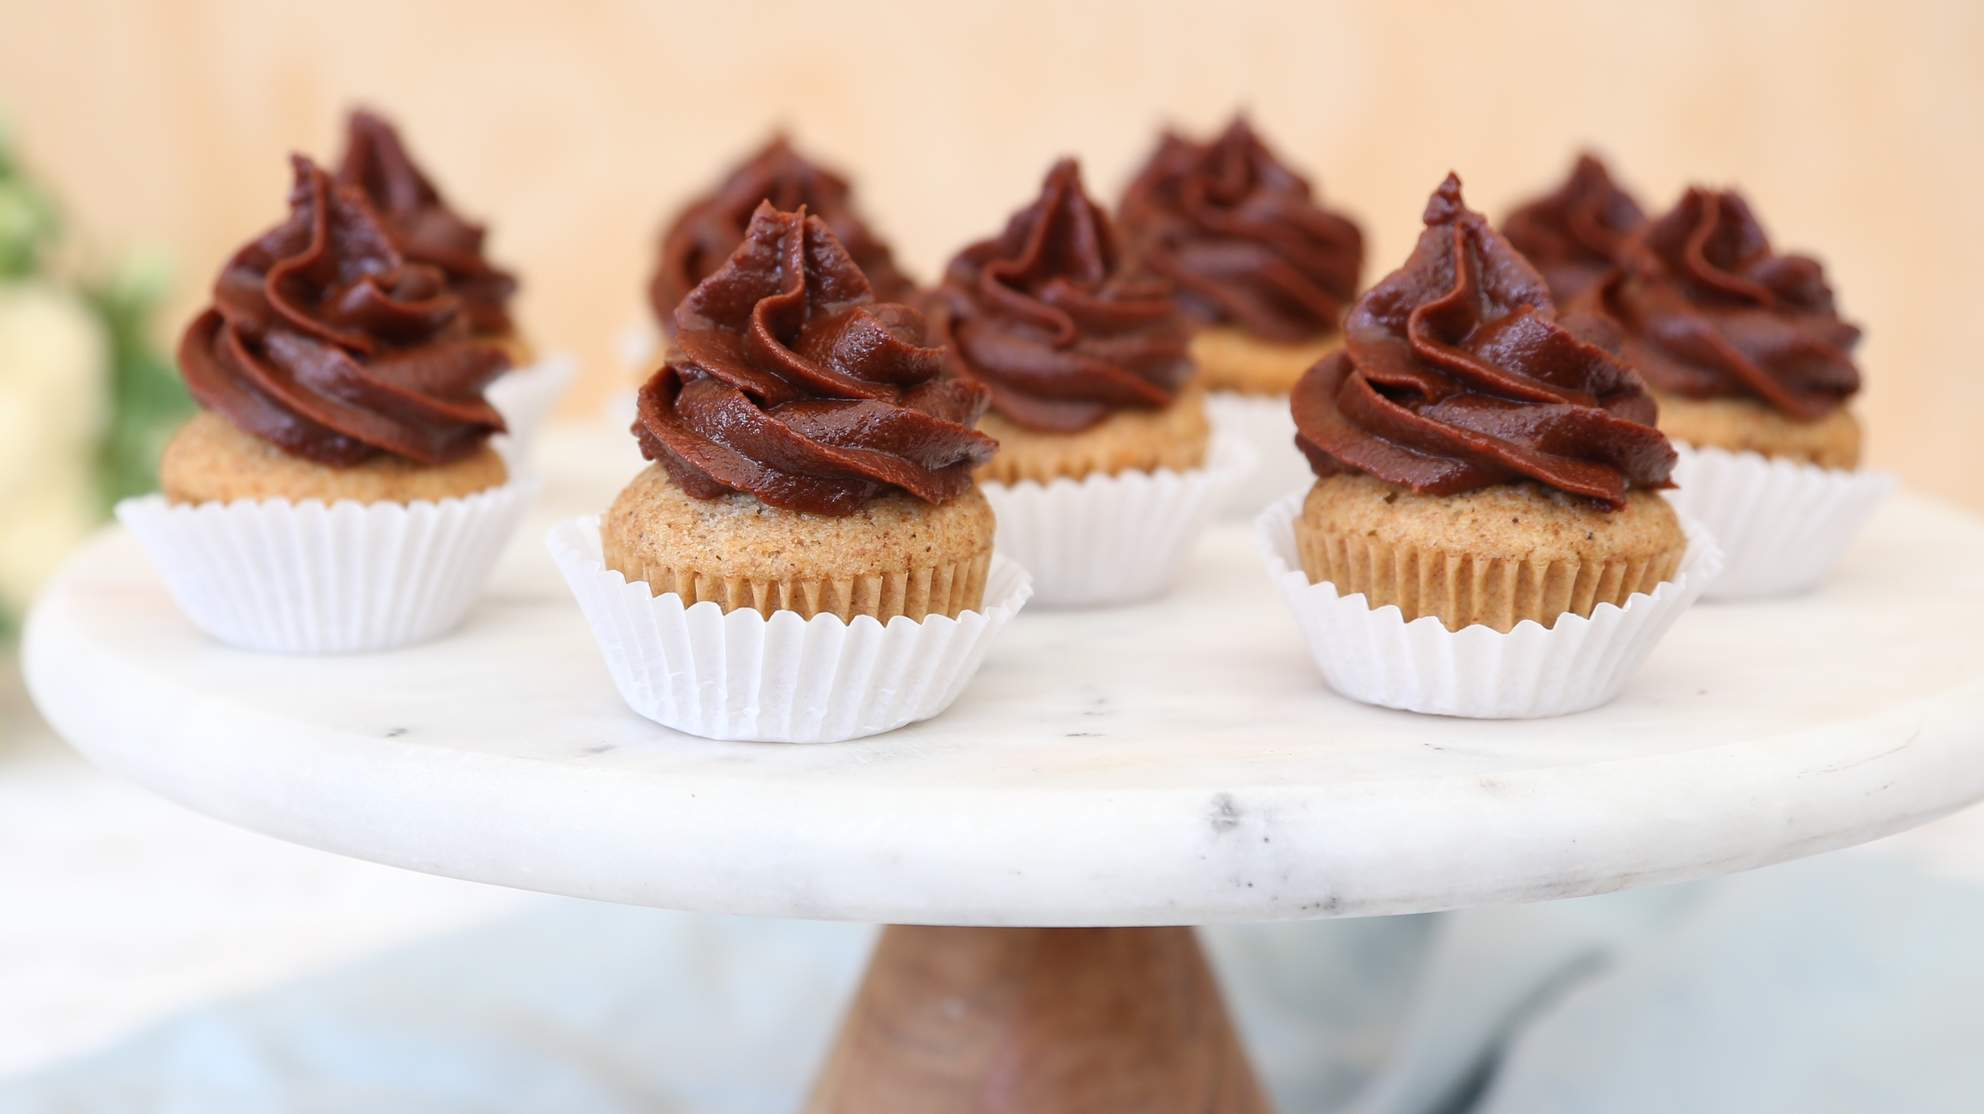 These Vanilla Cupcakes Are Made With Cauliflower—and You'd Never Know It